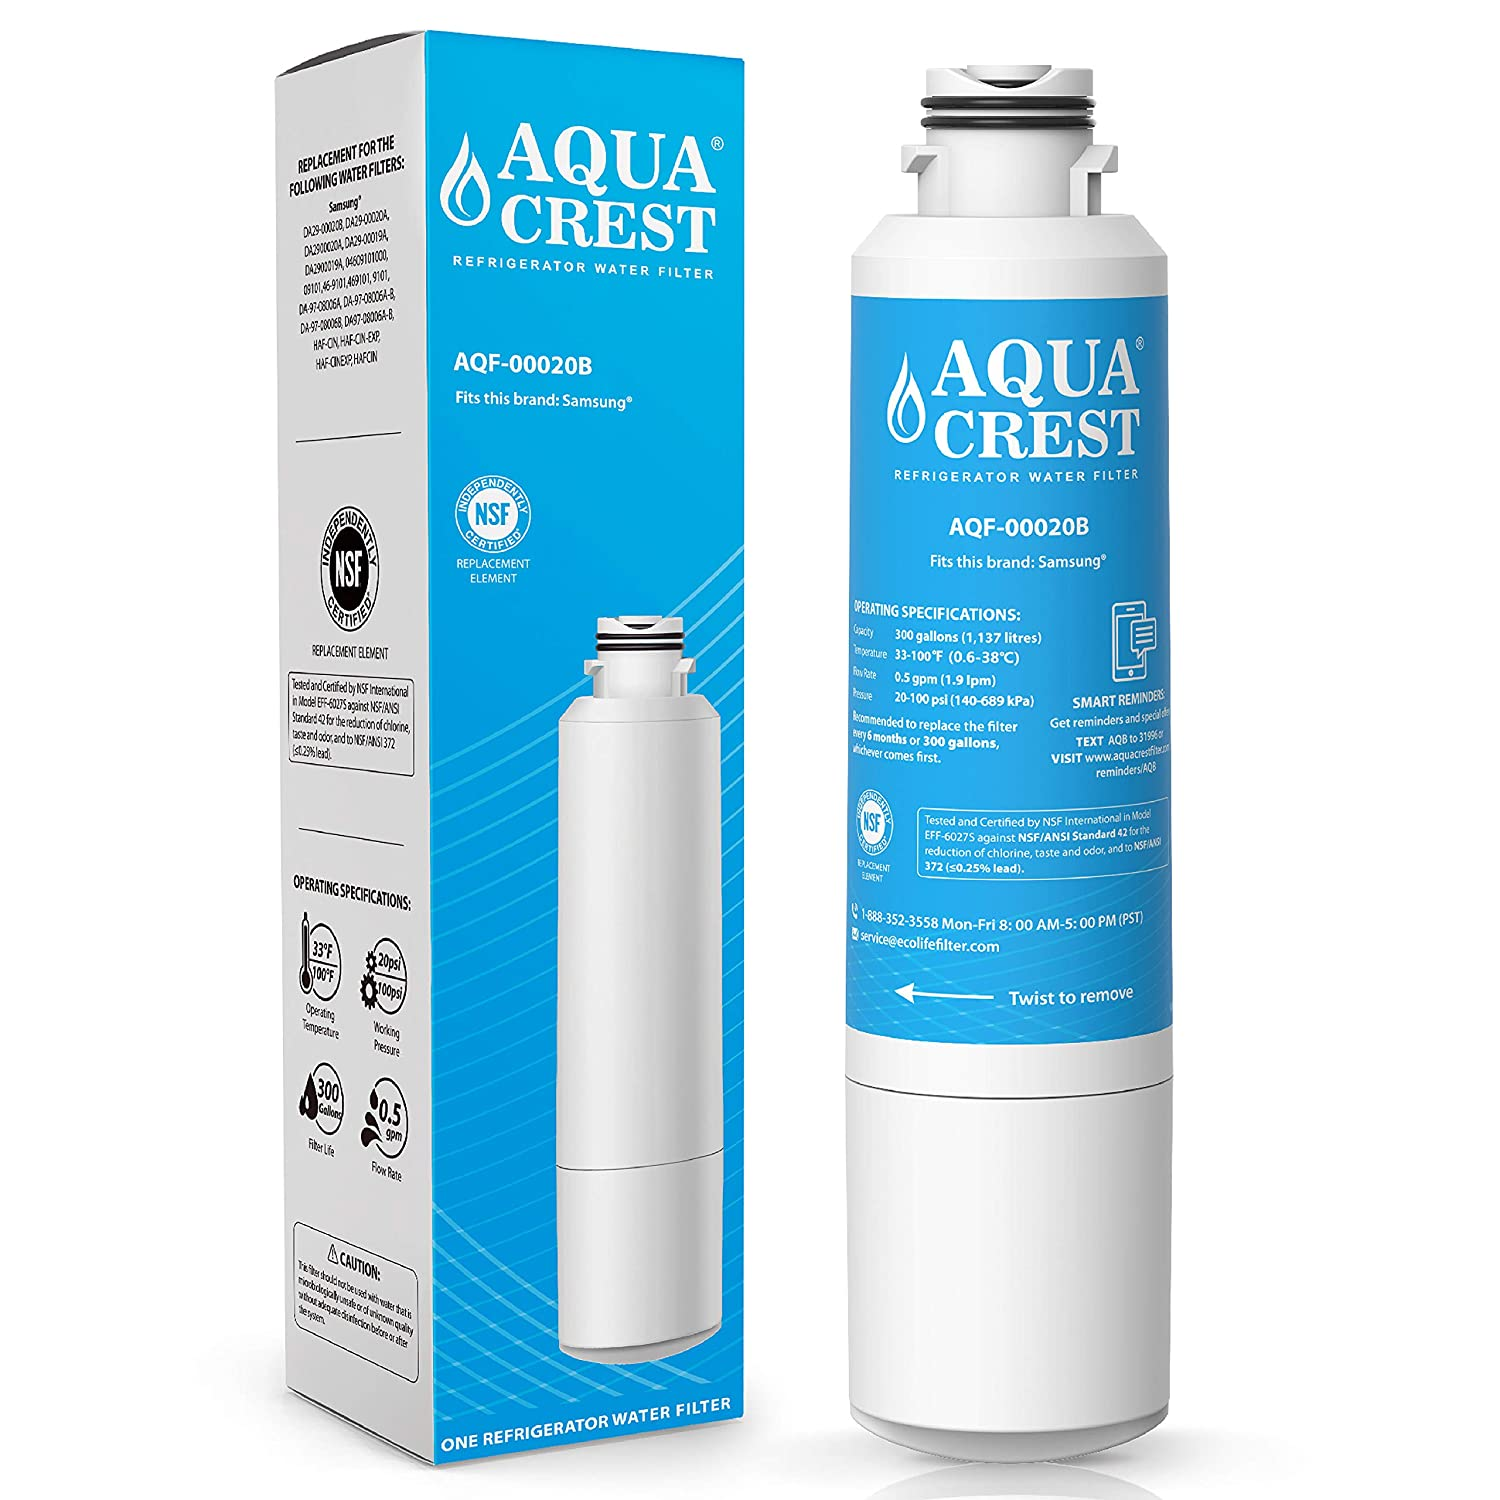 AQUACREST DA29-00020B Refrigerator Water Filter, Compatible with Samsung DA29-00020B, DA29-00020A, HAF-CIN/EXP, 46-9101